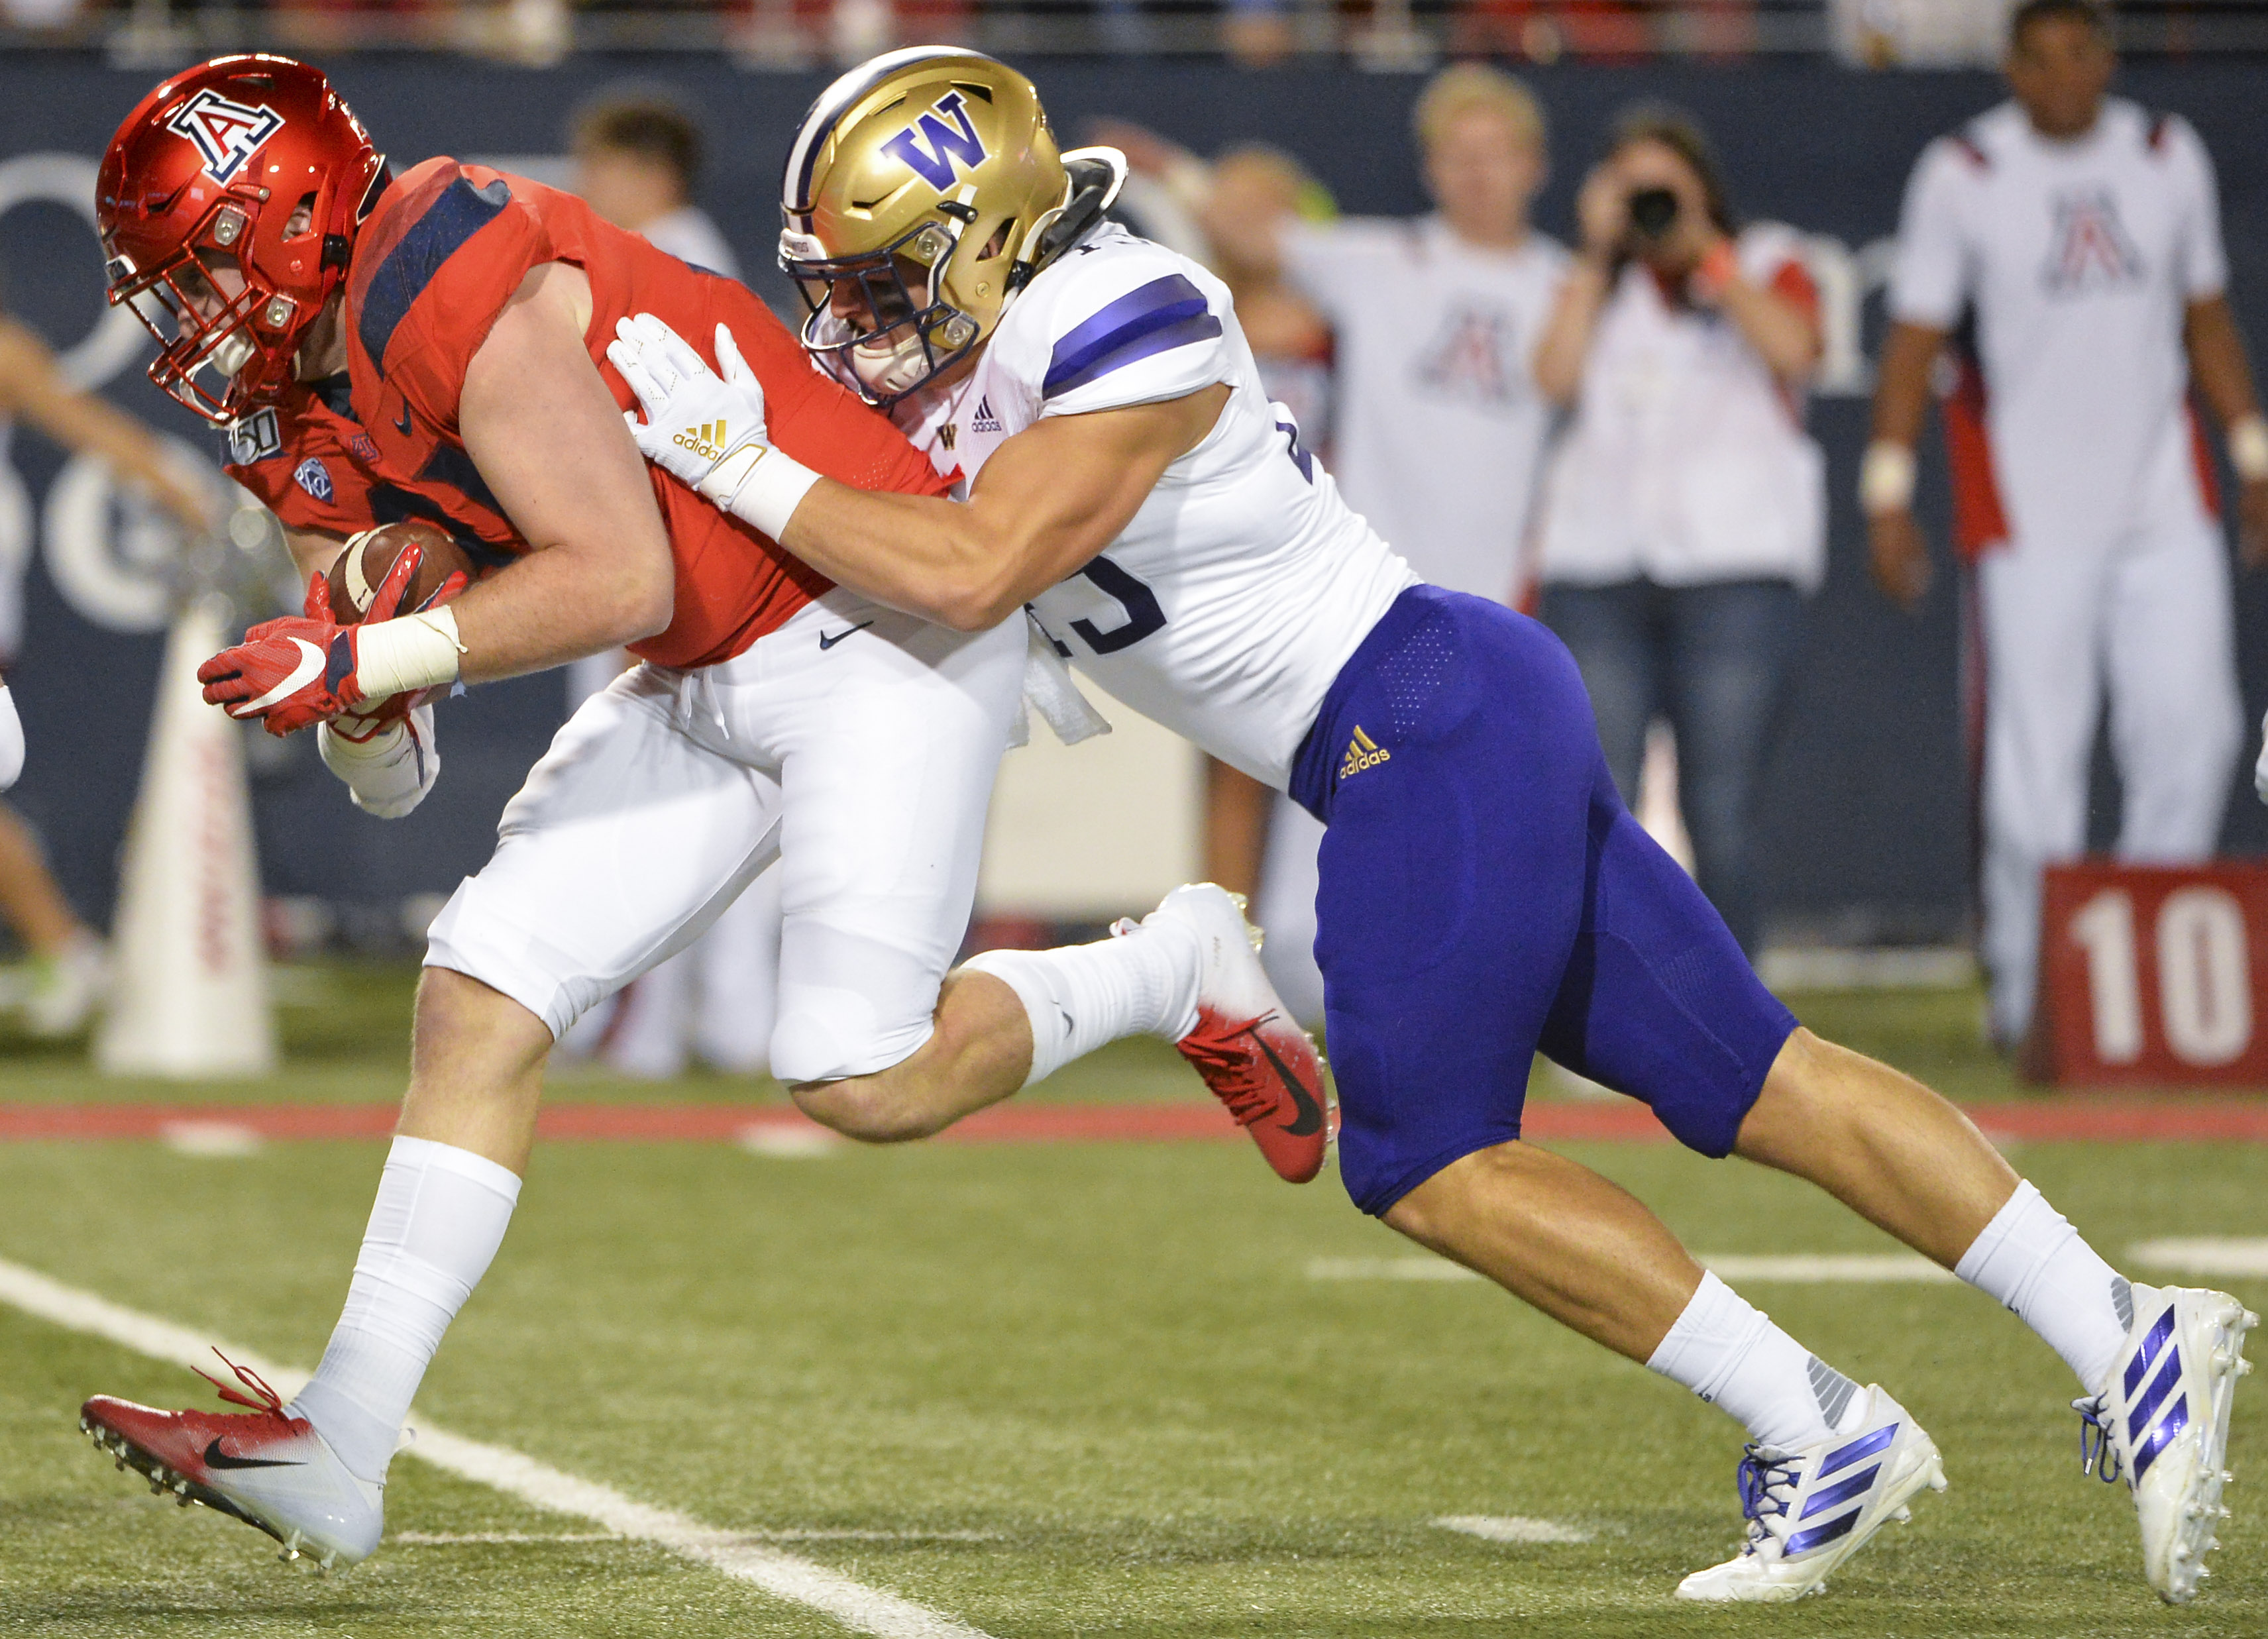 Arizona could not overcome Husky defense and miscues in 51-27 loss to Washington